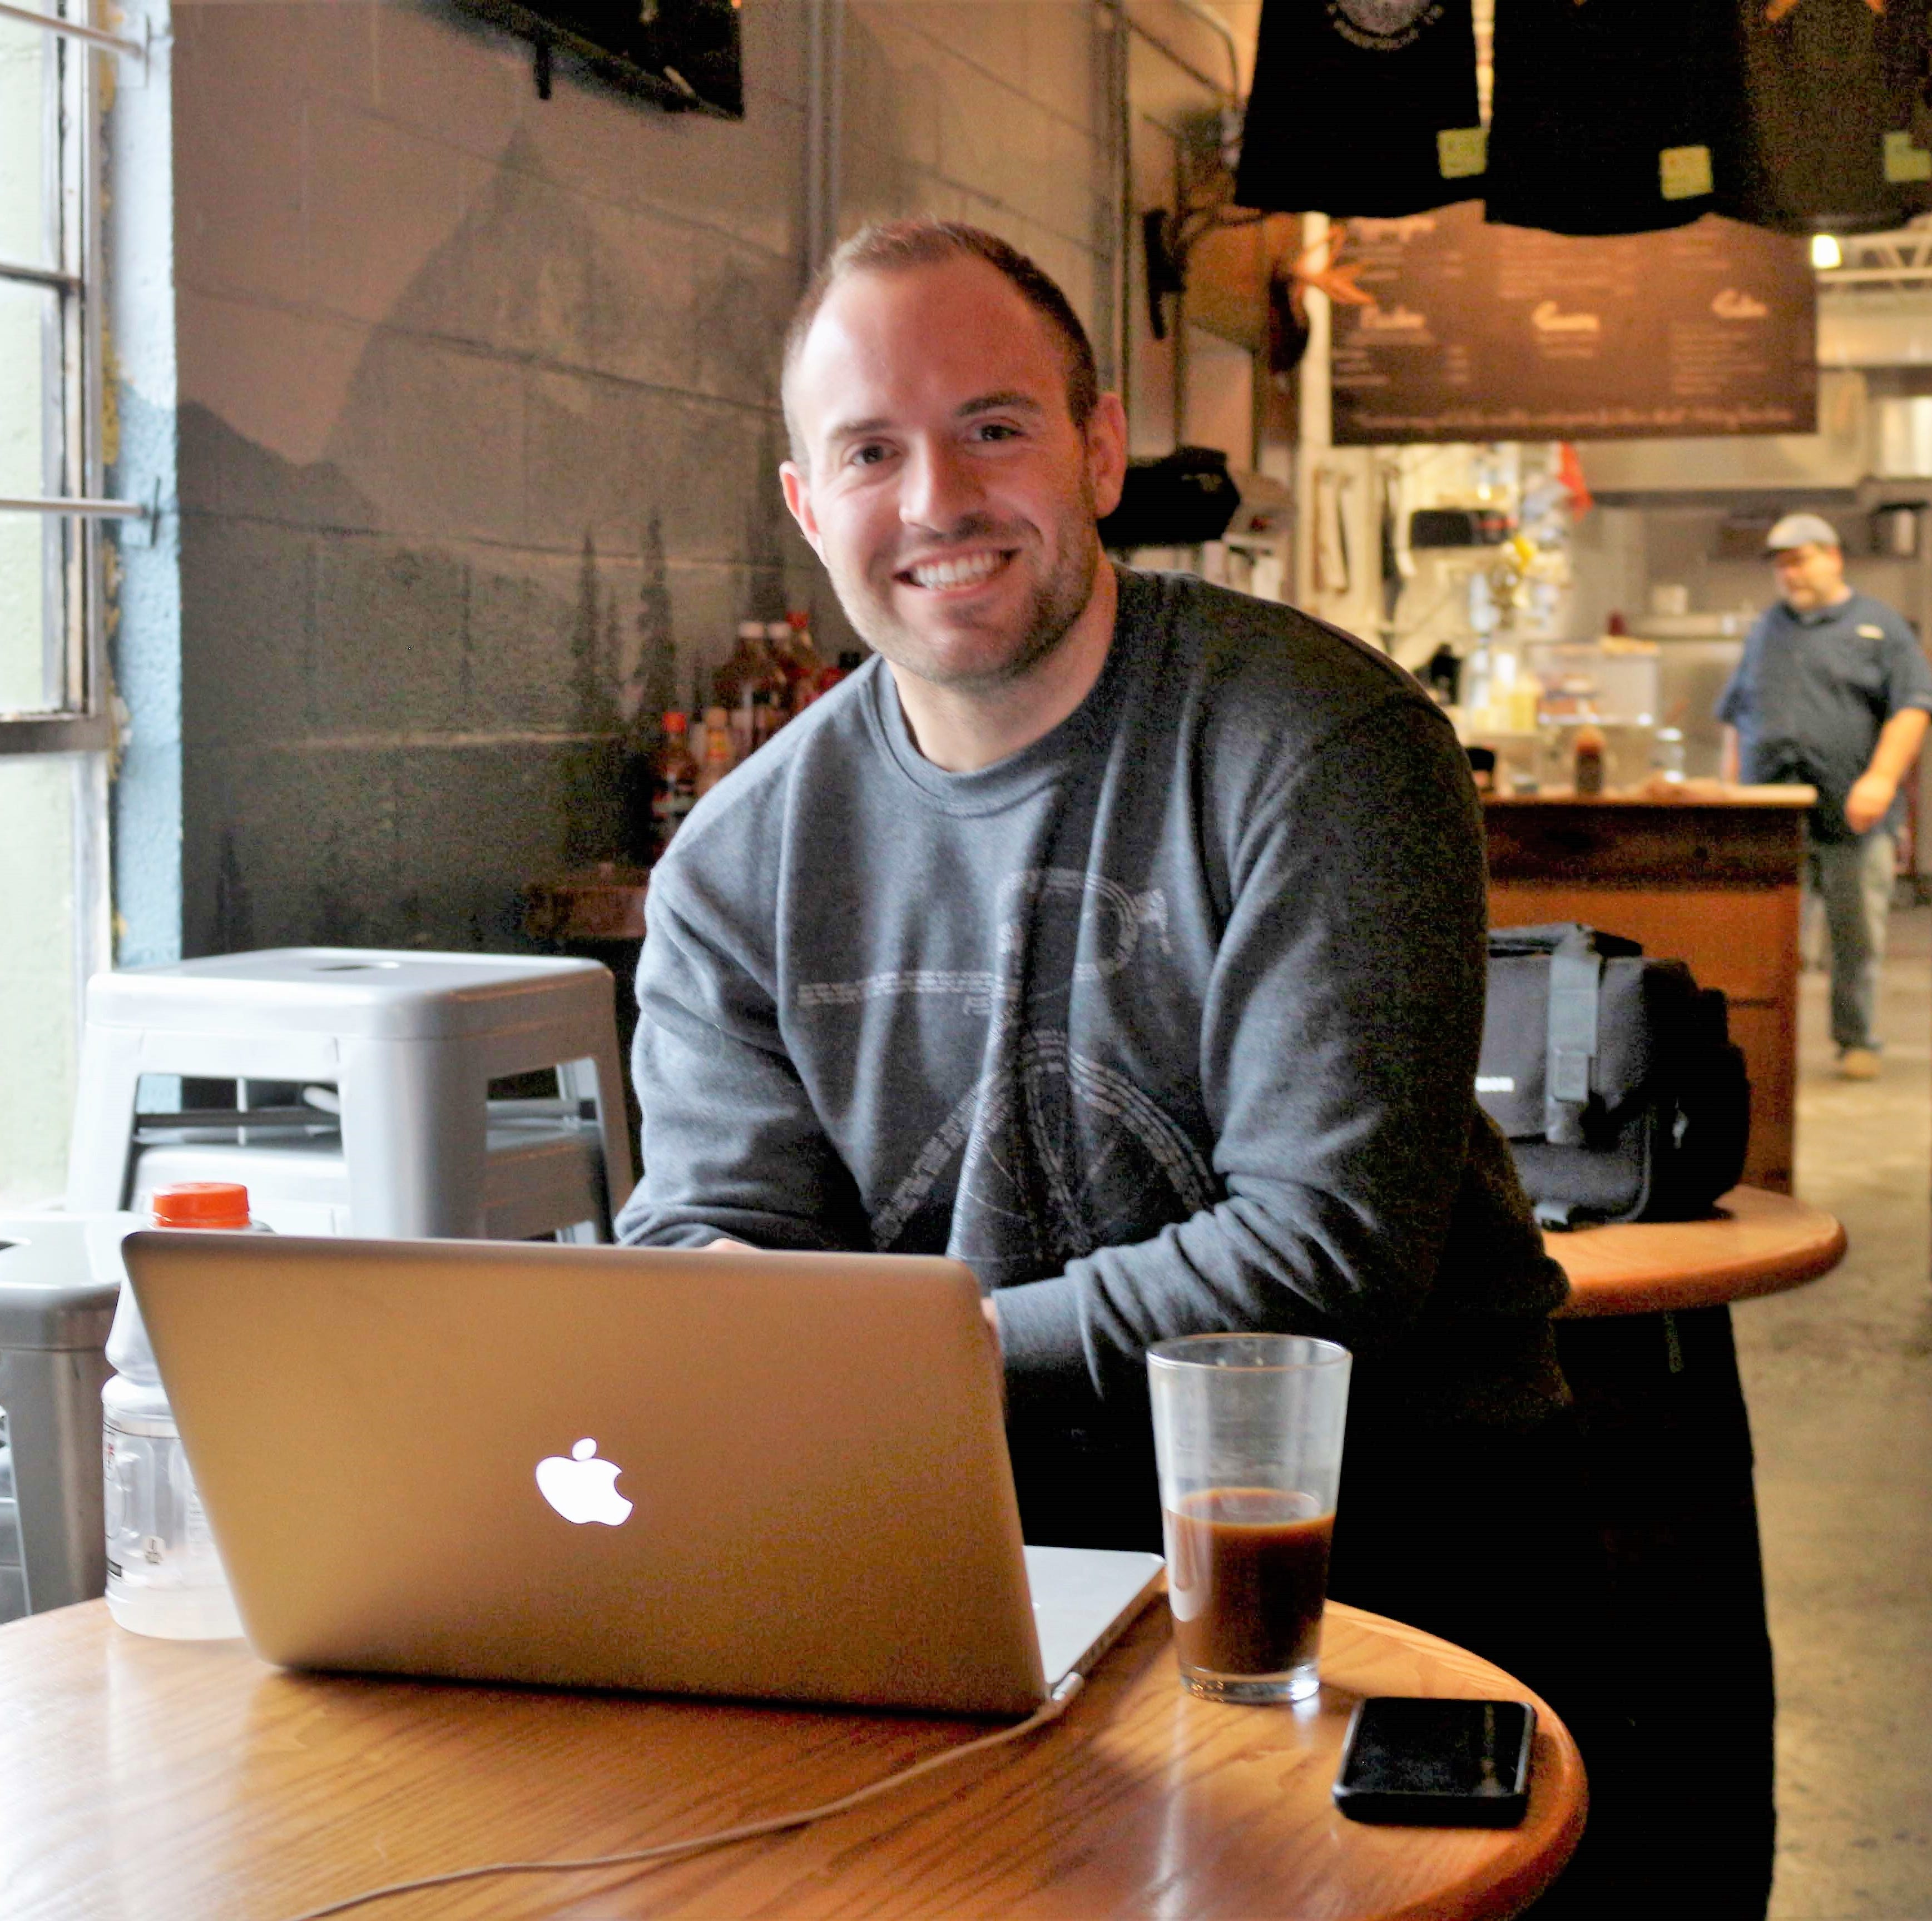 Shopper News blog: Entrepreneur joins shared-workspace trend